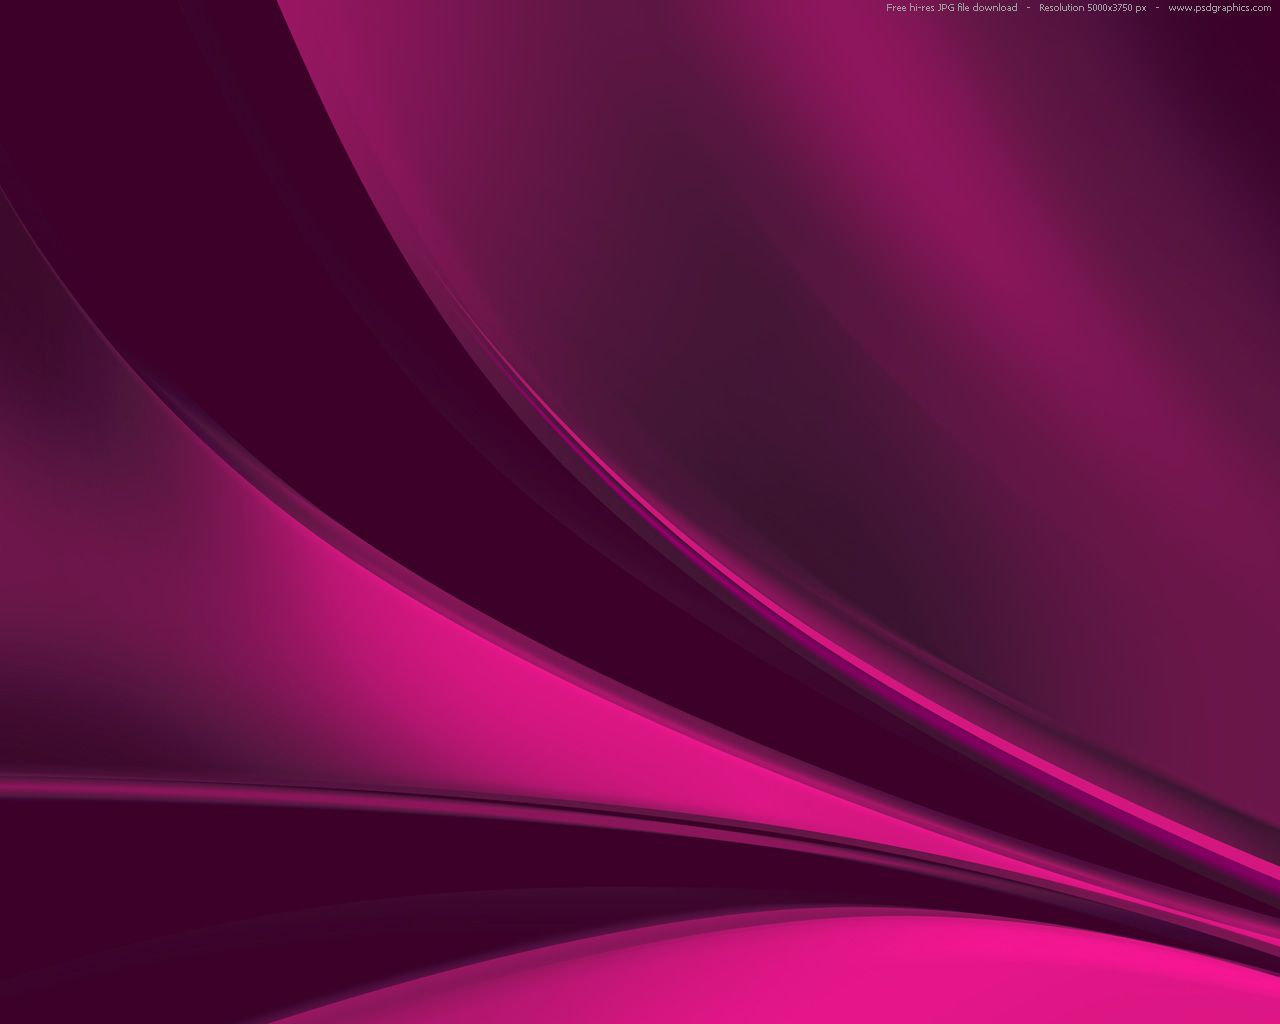 Graphics bg textured hd wallpapers designs for mobile desktop download - Purple Abstract Wallpaper Wallpaper Abstract Purple Resolution Download 196775